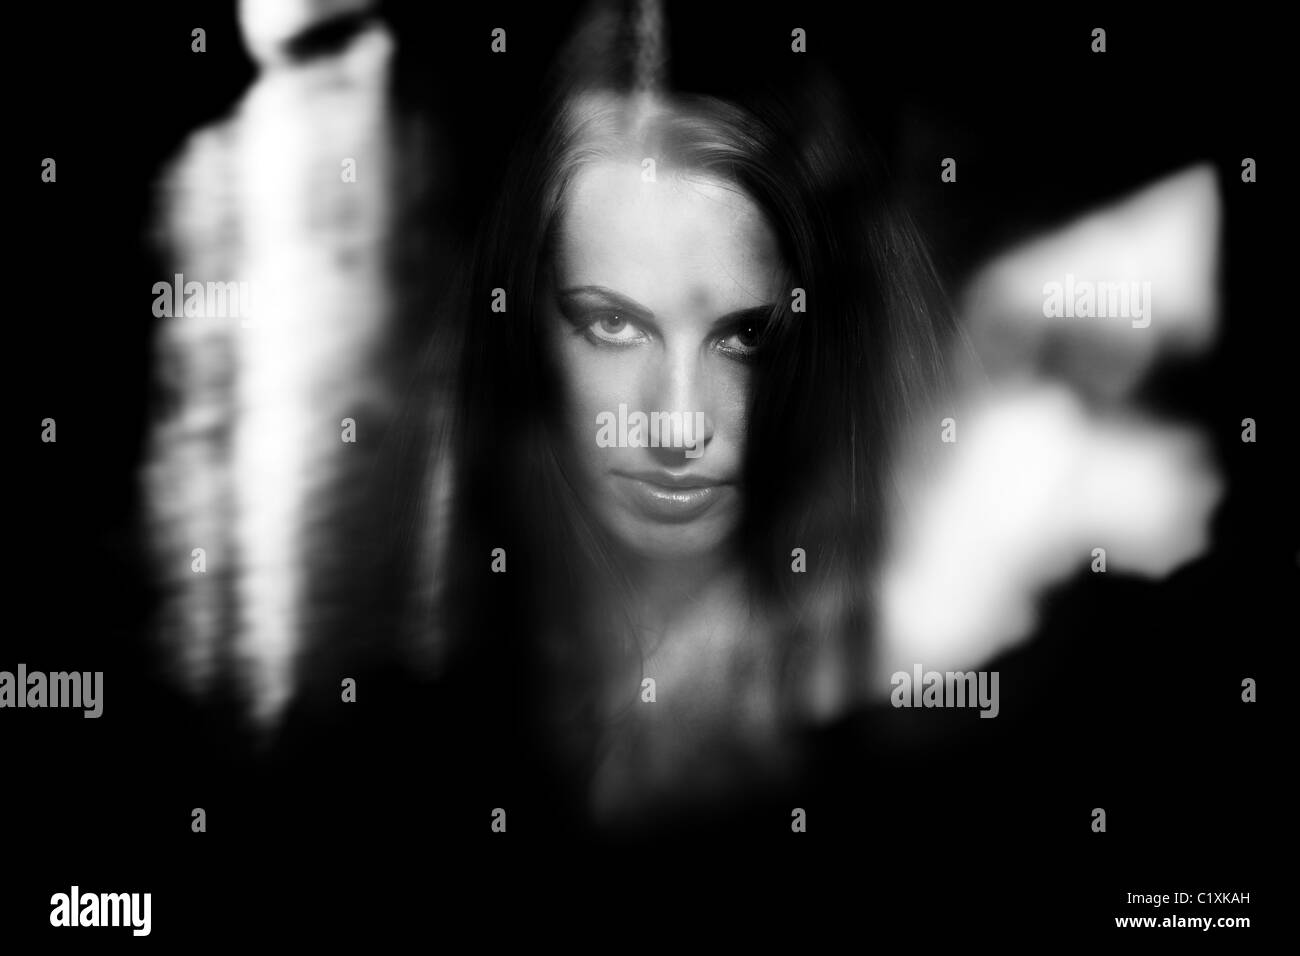 Female witch behind the dark glass with reflections - Stock Image